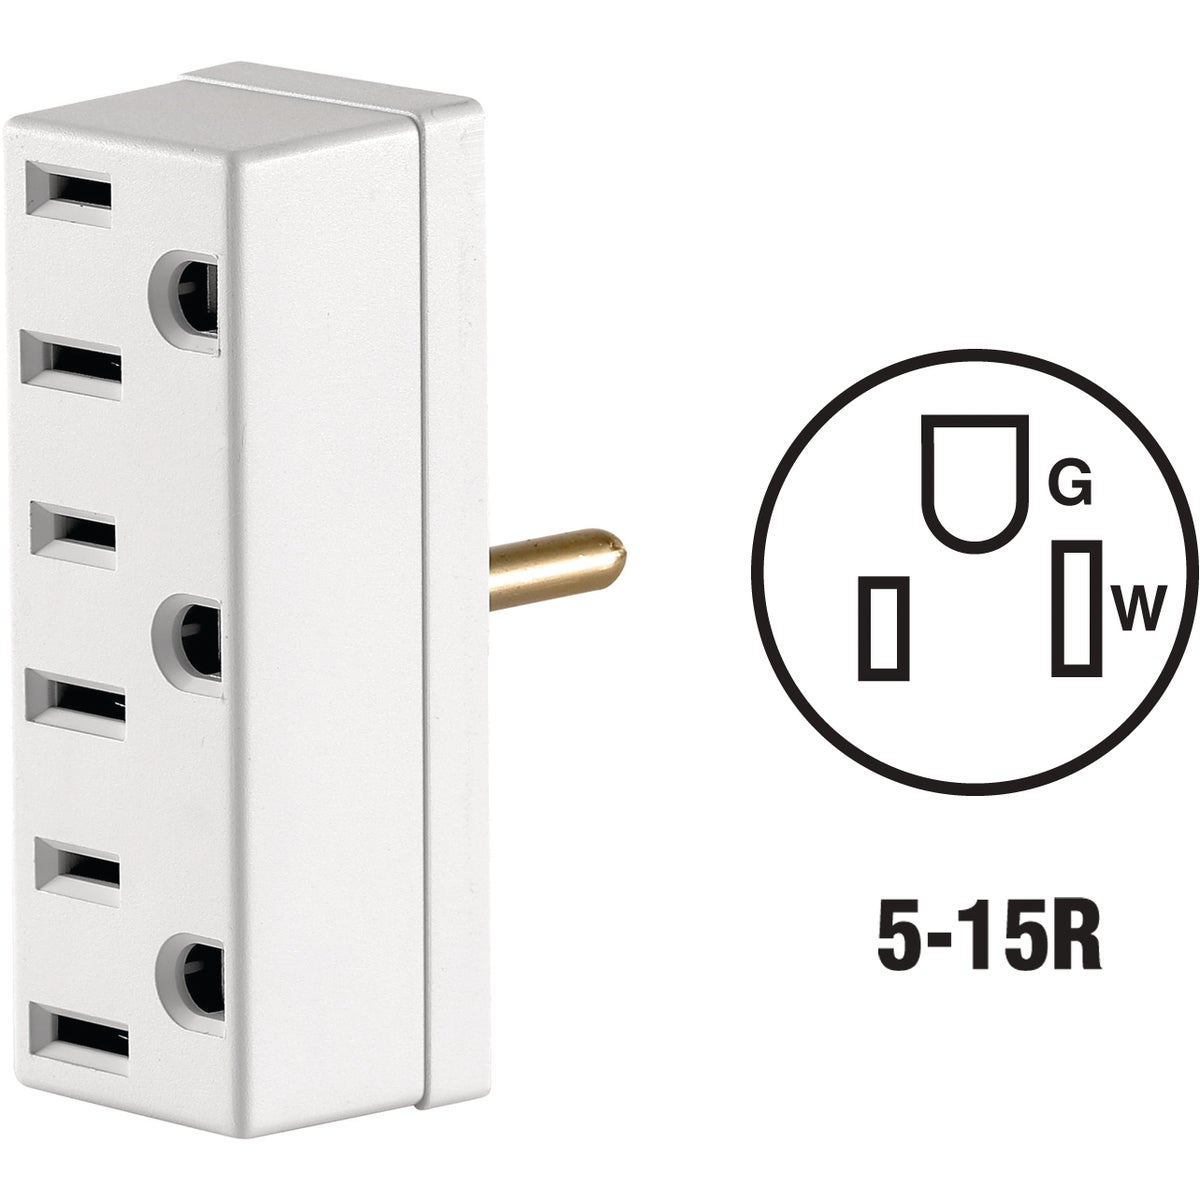 WHT GRND TRIPLE TAP - 007697W by Leviton Mfg Co